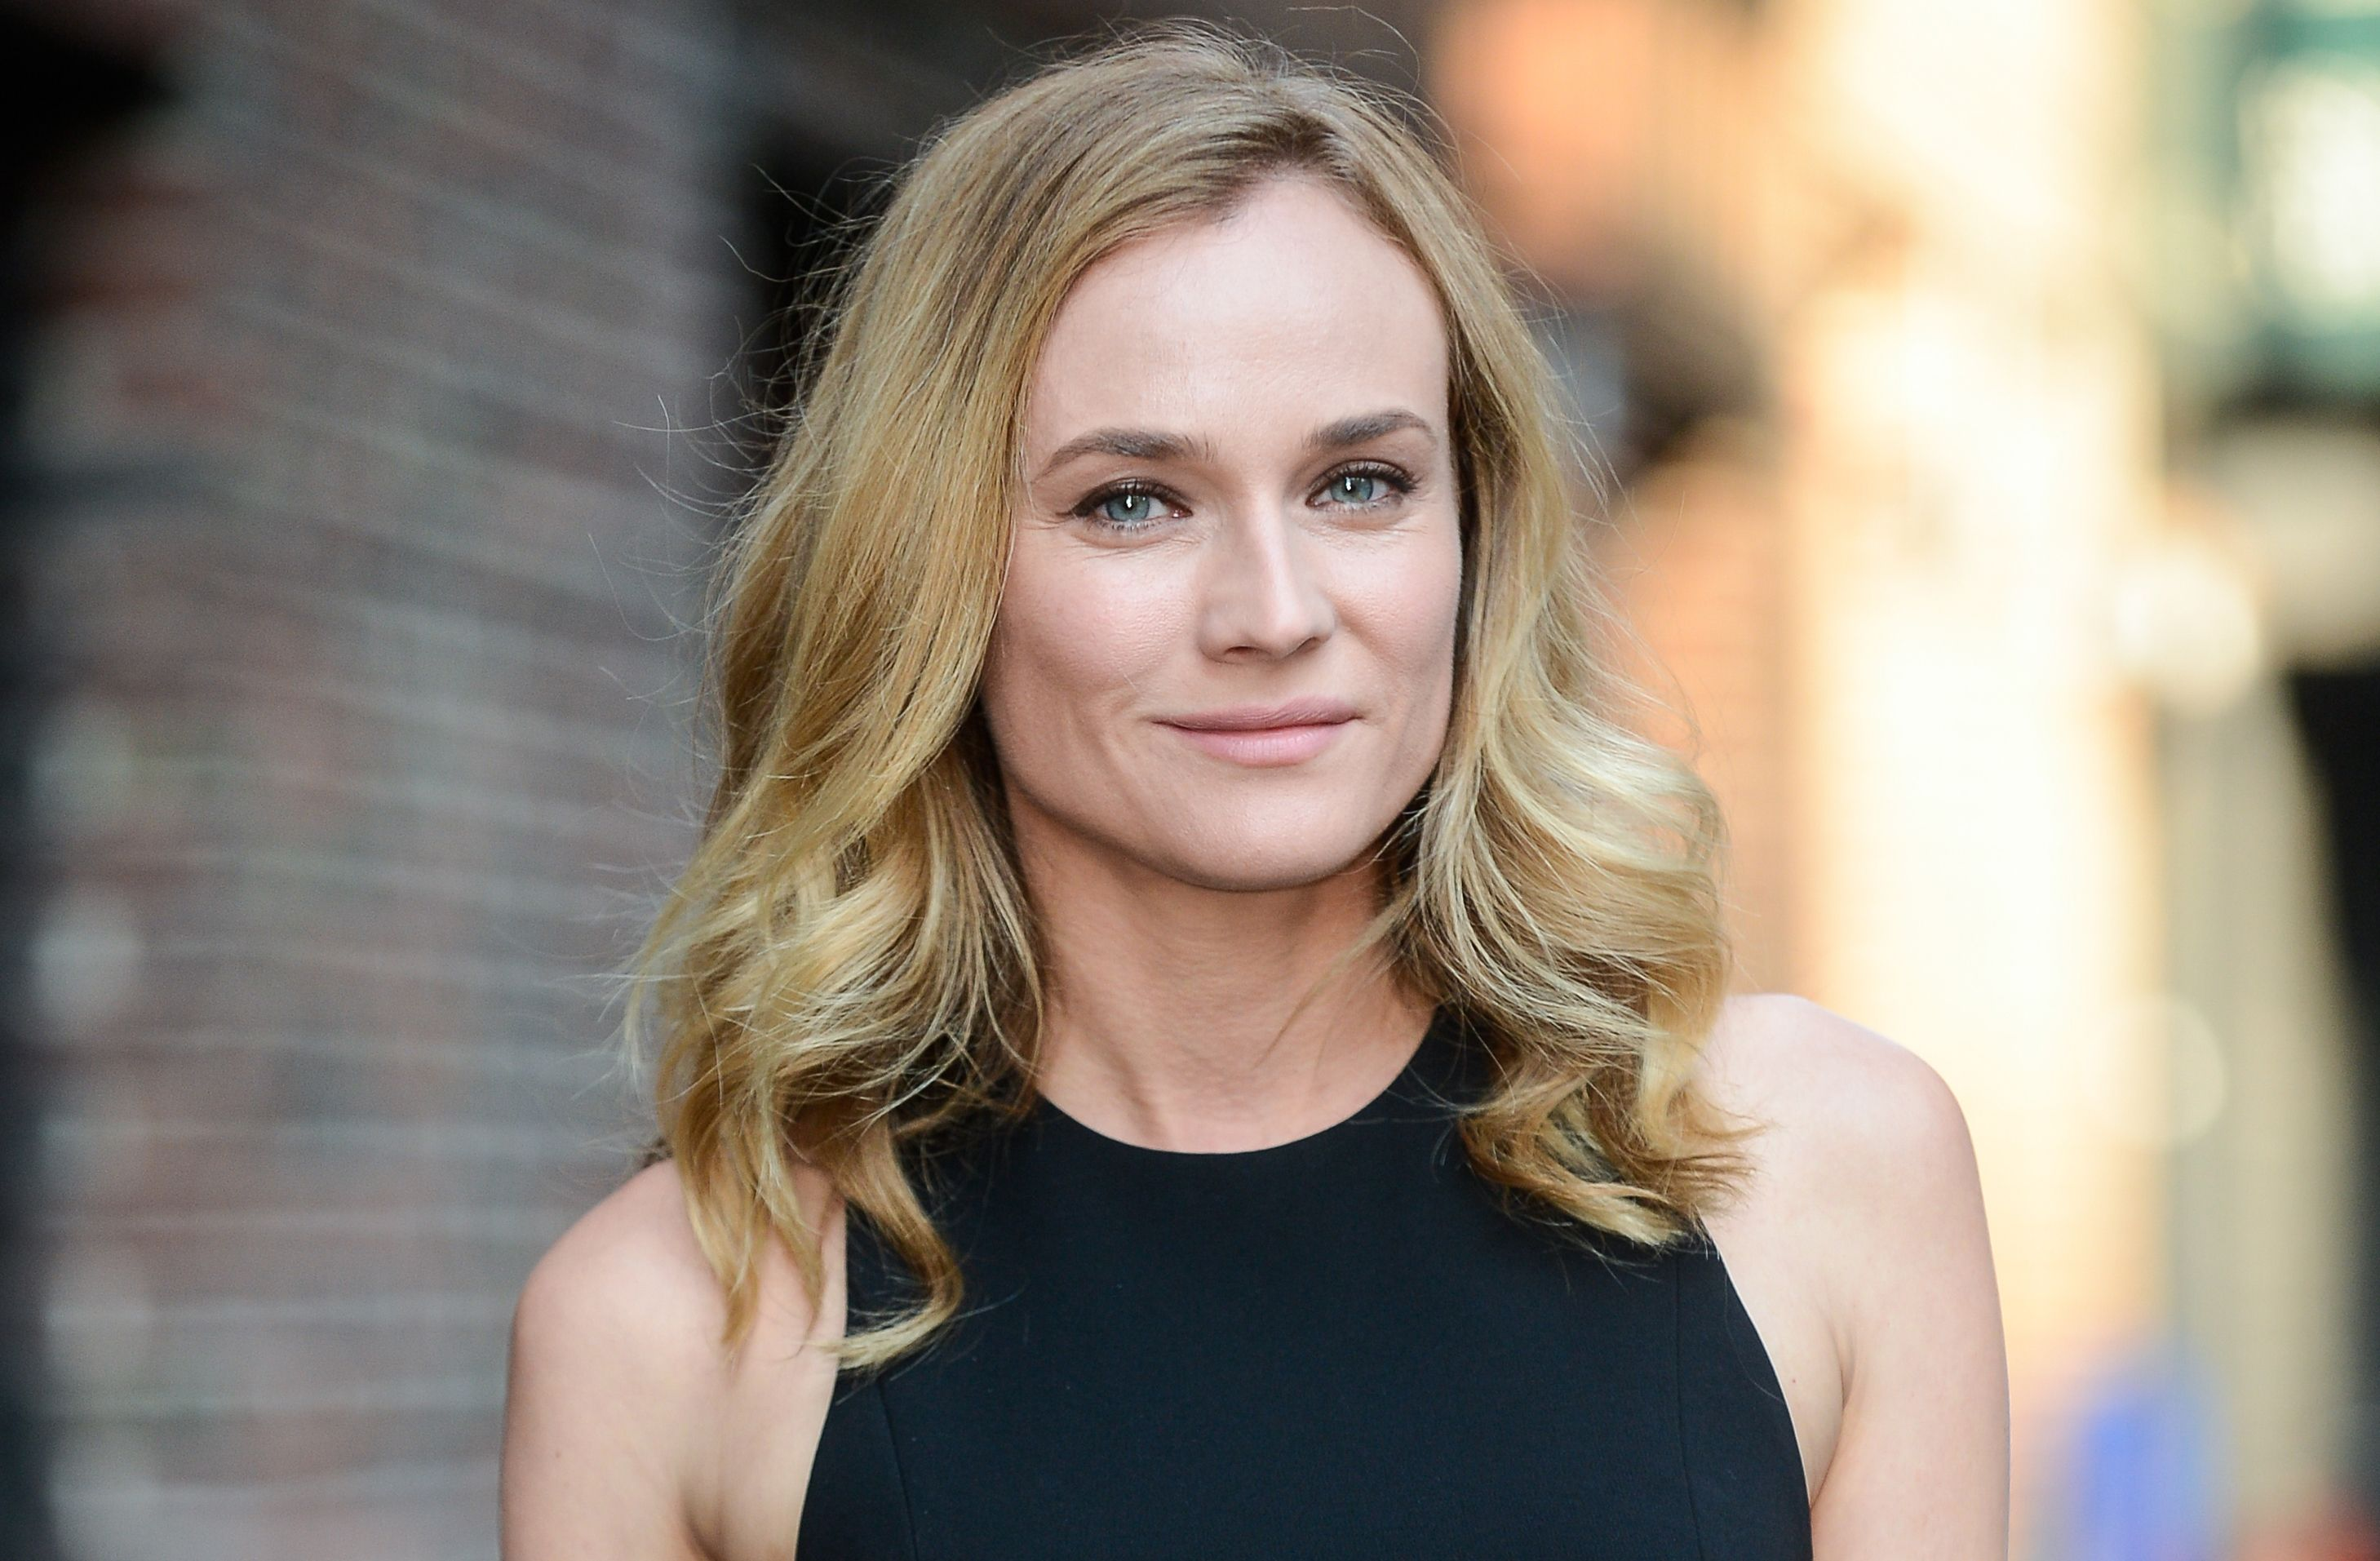 ICloud Diane Kruger nudes (26 foto and video), Ass, Paparazzi, Twitter, see through 2017